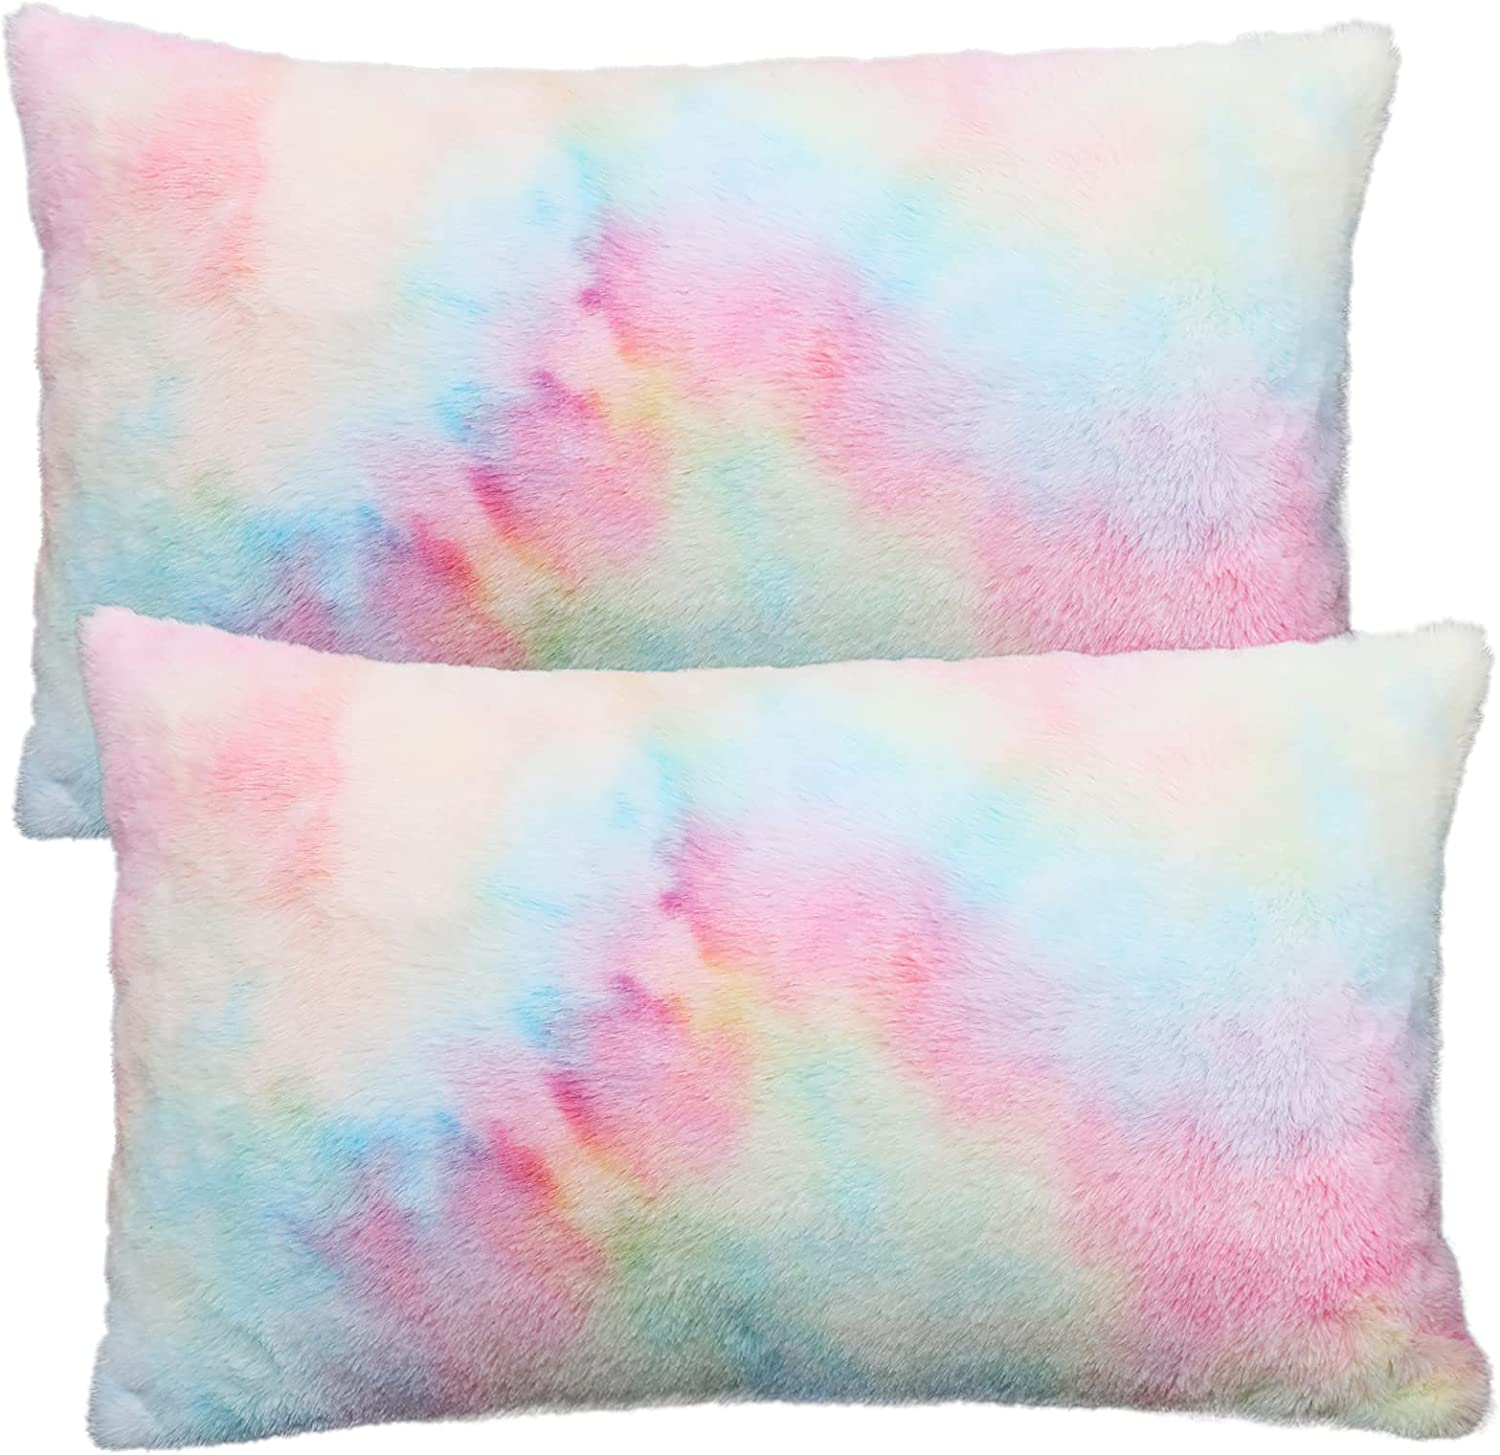 Arlington Mall New Free Shipping Muchique Pack of 2 Soft Faux Lumbar Throw Decorative Pillow Fur